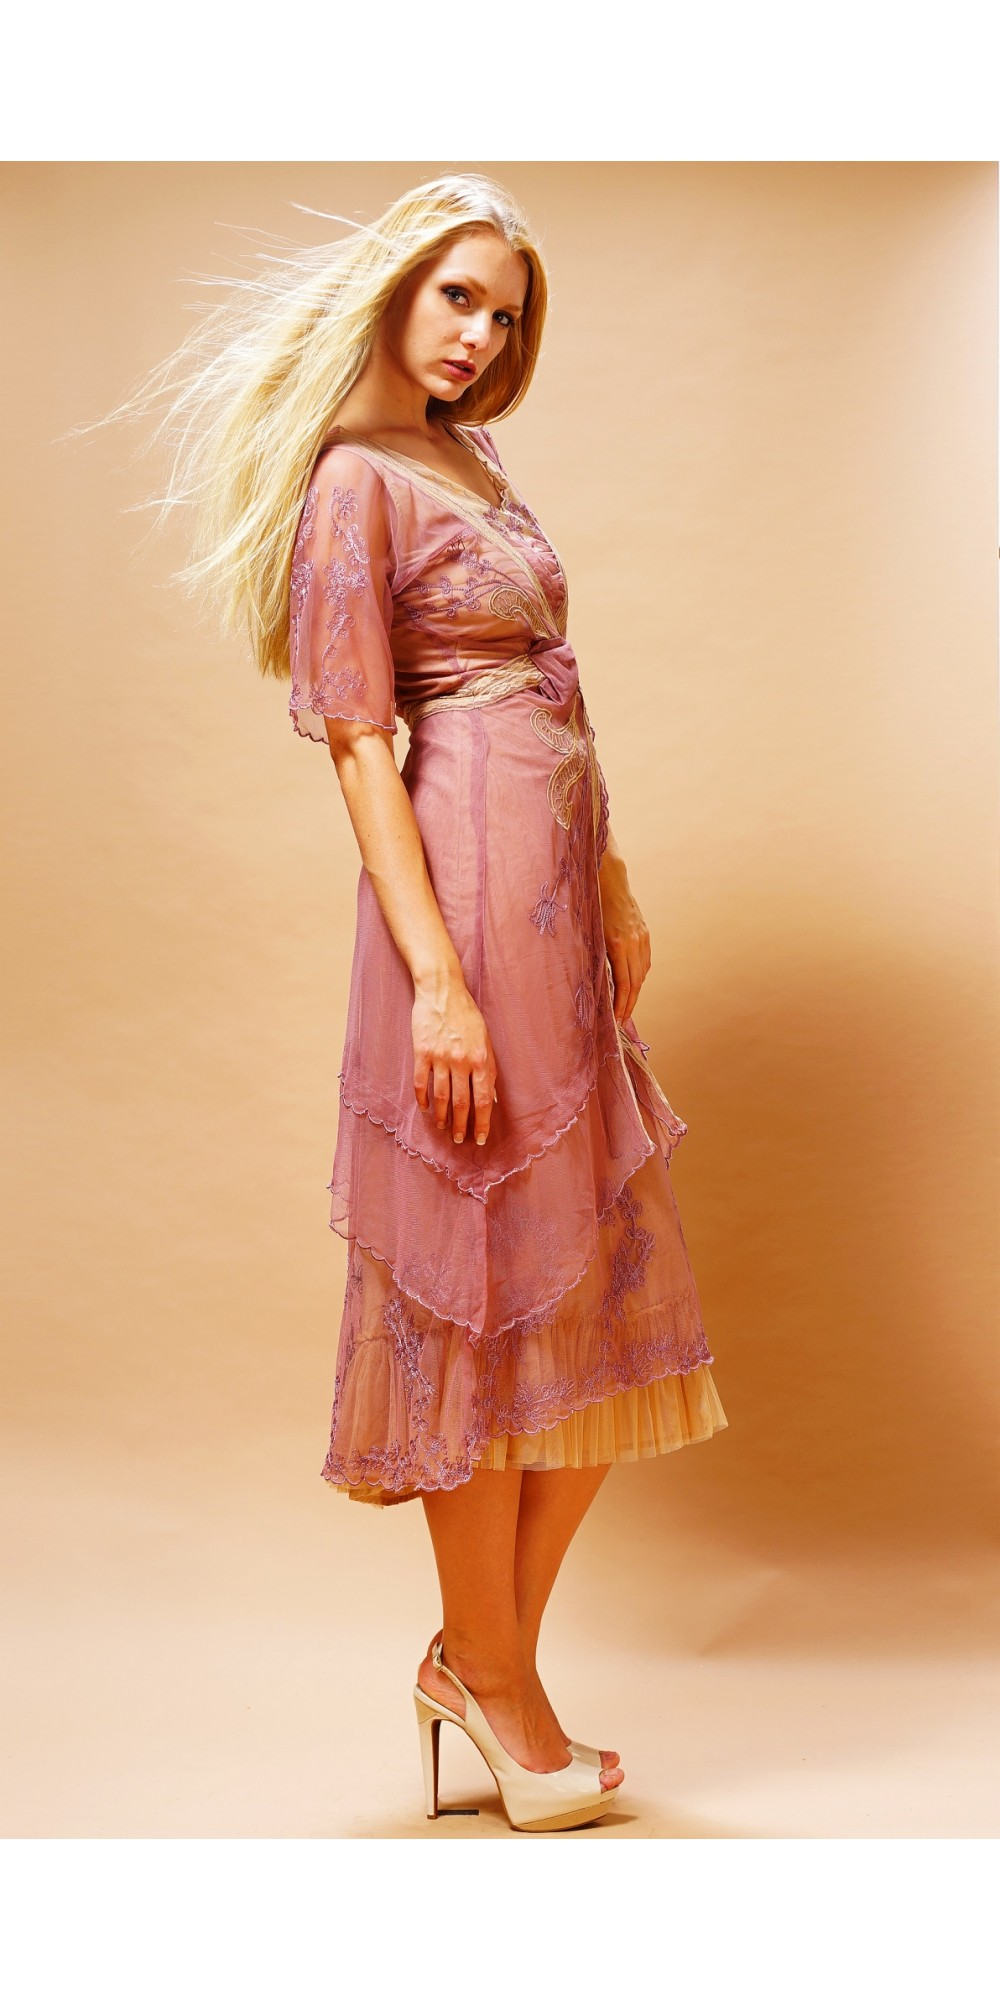 cb16197b5c0 Embroidered Layered Summer Dress in Rose Butter by Nataya